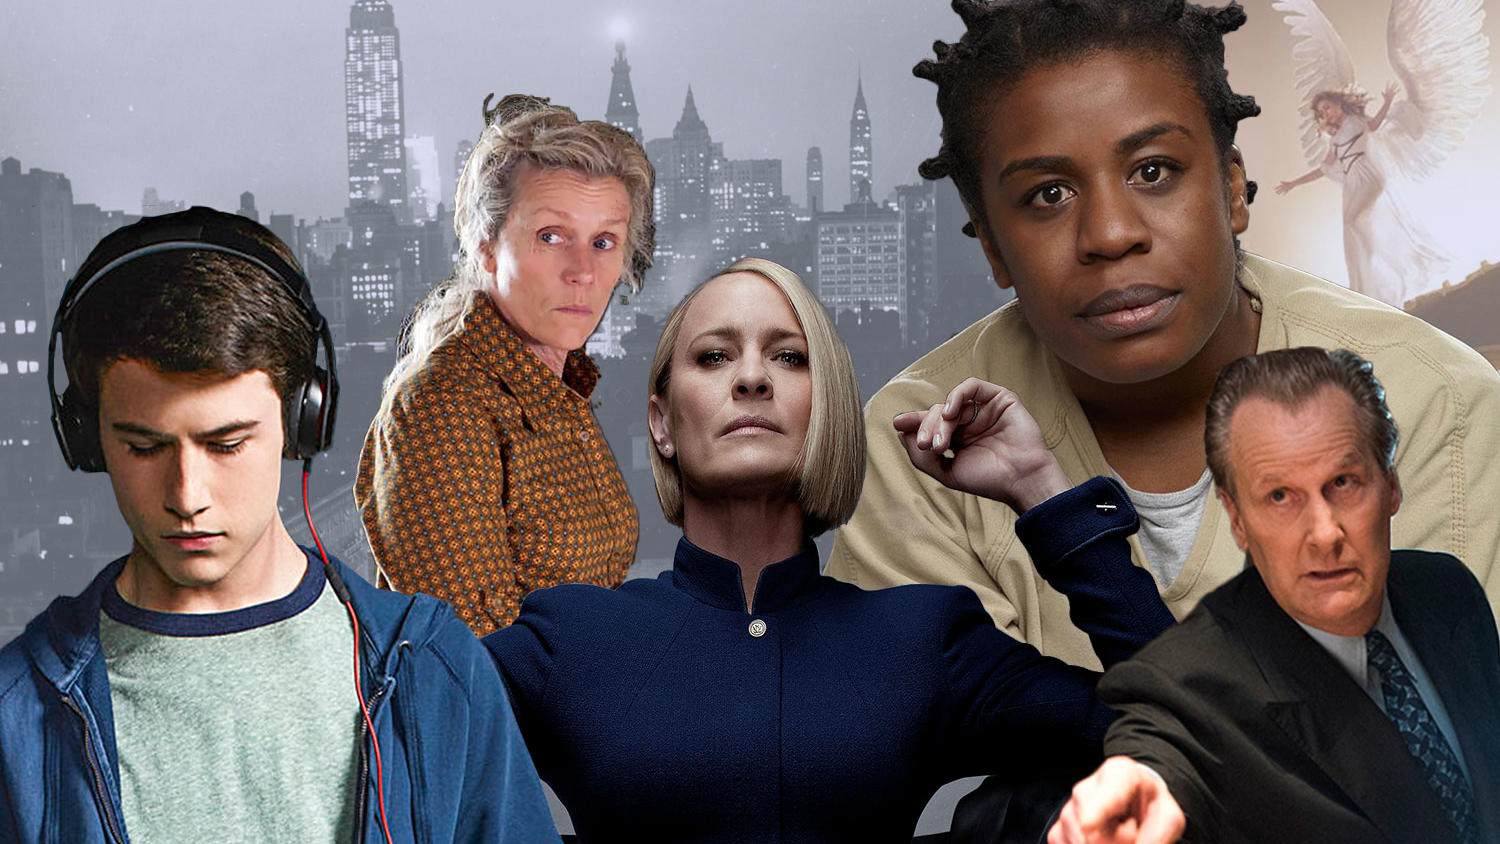 Photo collage for Columbia Magazine with characters from 13 Reasons Why, Olive Kitteridge, Orange is the New Black, House of Cards, Angels in America, and the Looming Tower